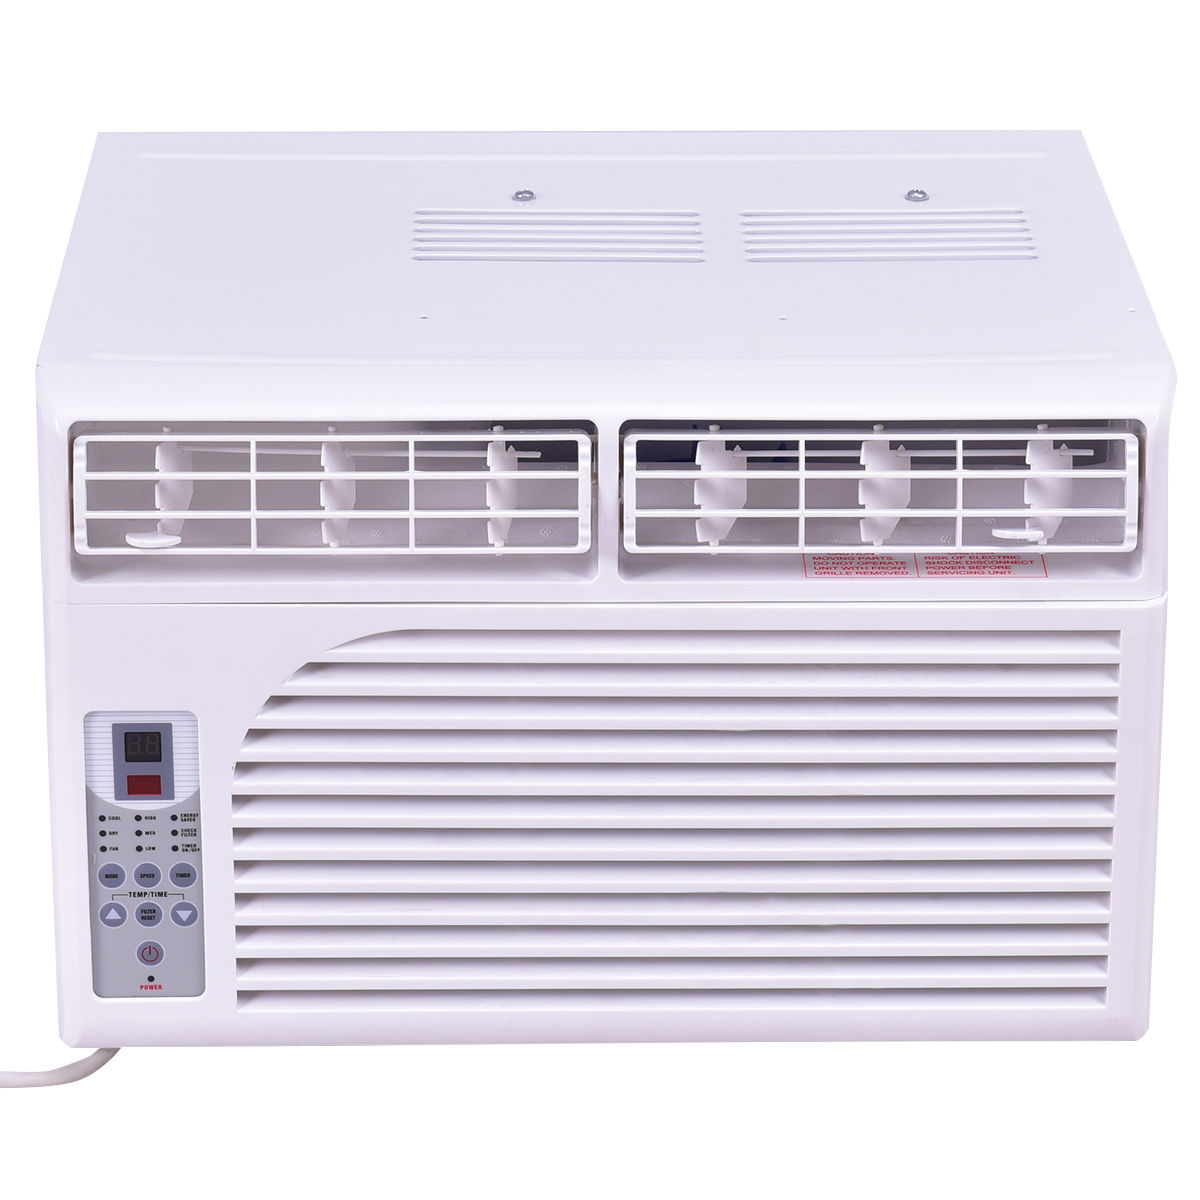 6000/8000/10000 BTU 115 V White Compact Window-Mounted Air Conditioner with Remote Control EP2286466-US